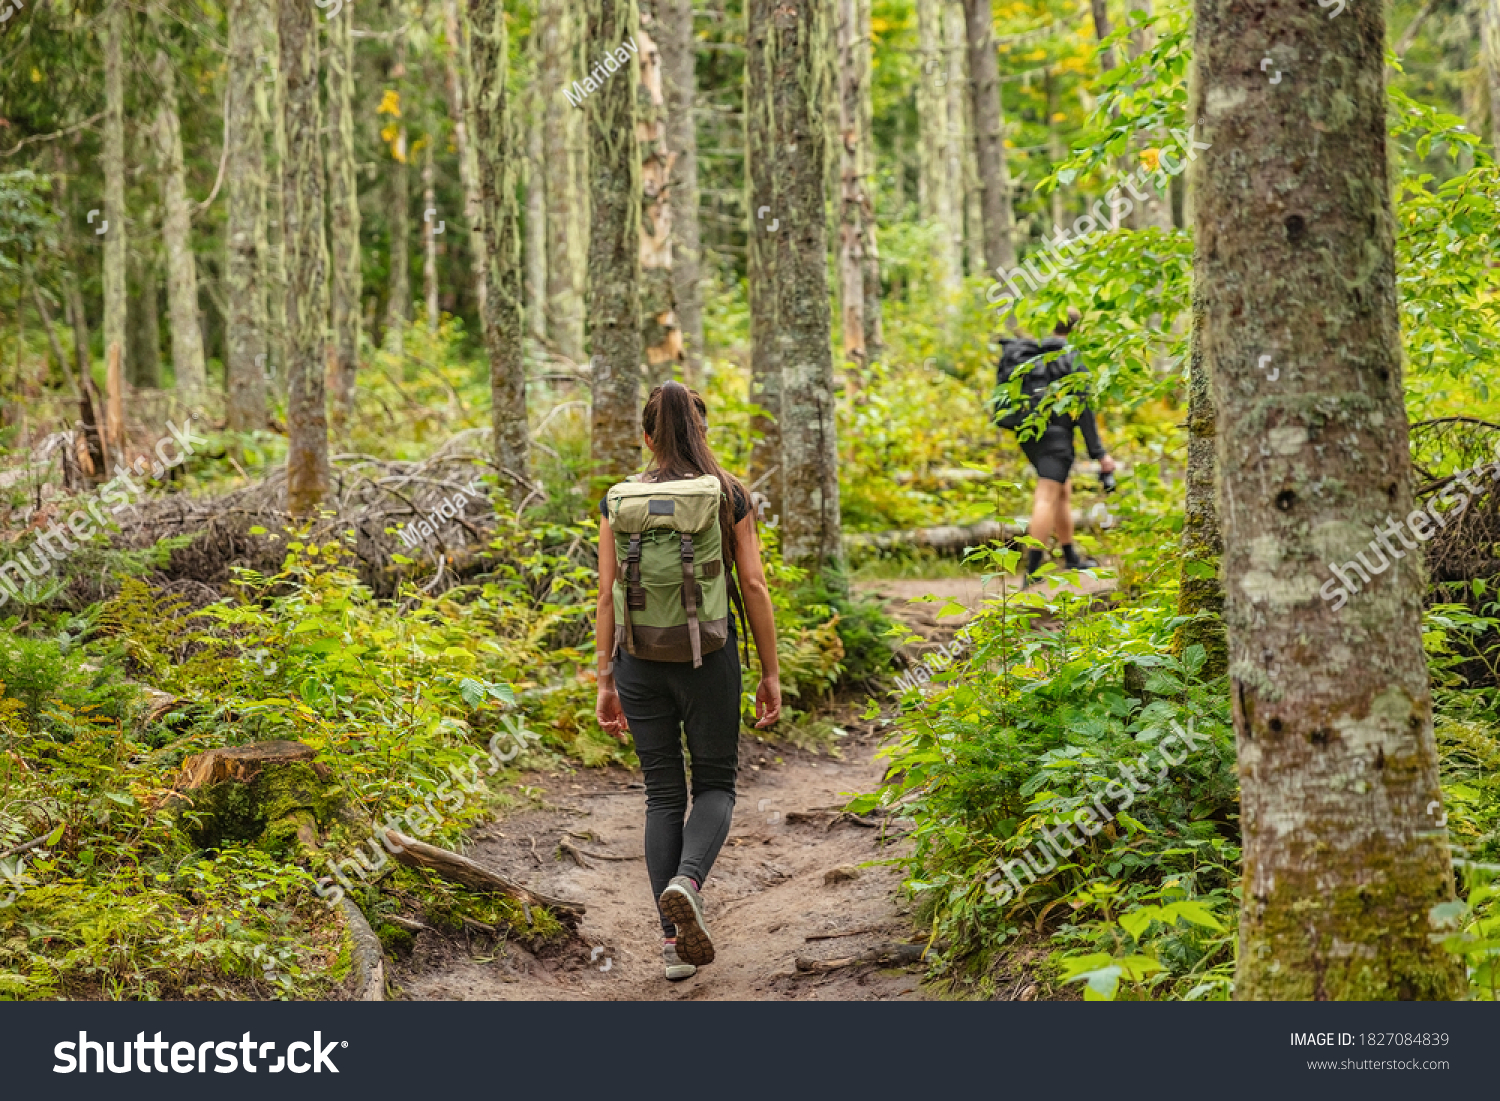 Hike trail hiker woman walking in autumn fall nature woods during fall season. Hiking active people tourists wearing backpacks outdoors trekking in pine forest. #1827084839